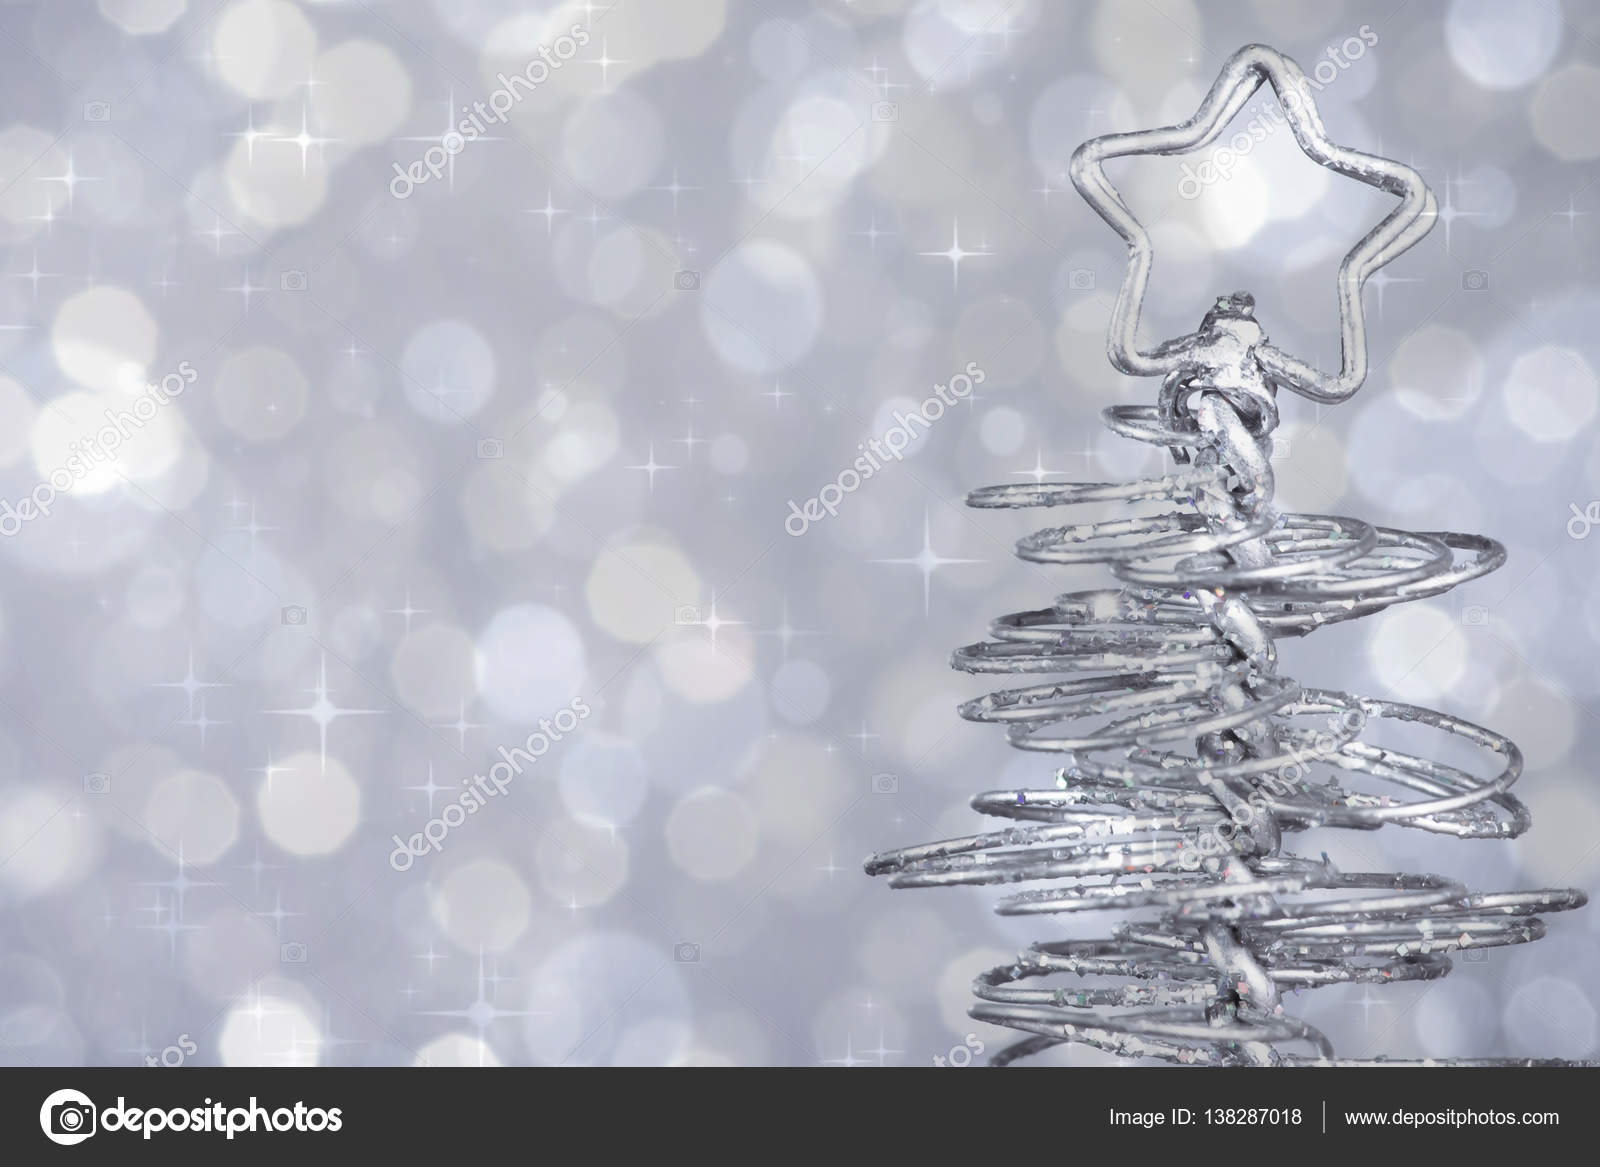 Metallic Modern Christmas Tree On Silver Tint Light Bokeh Background Xmas Holiday Stock Photo Image By C Donfiore1 138287018